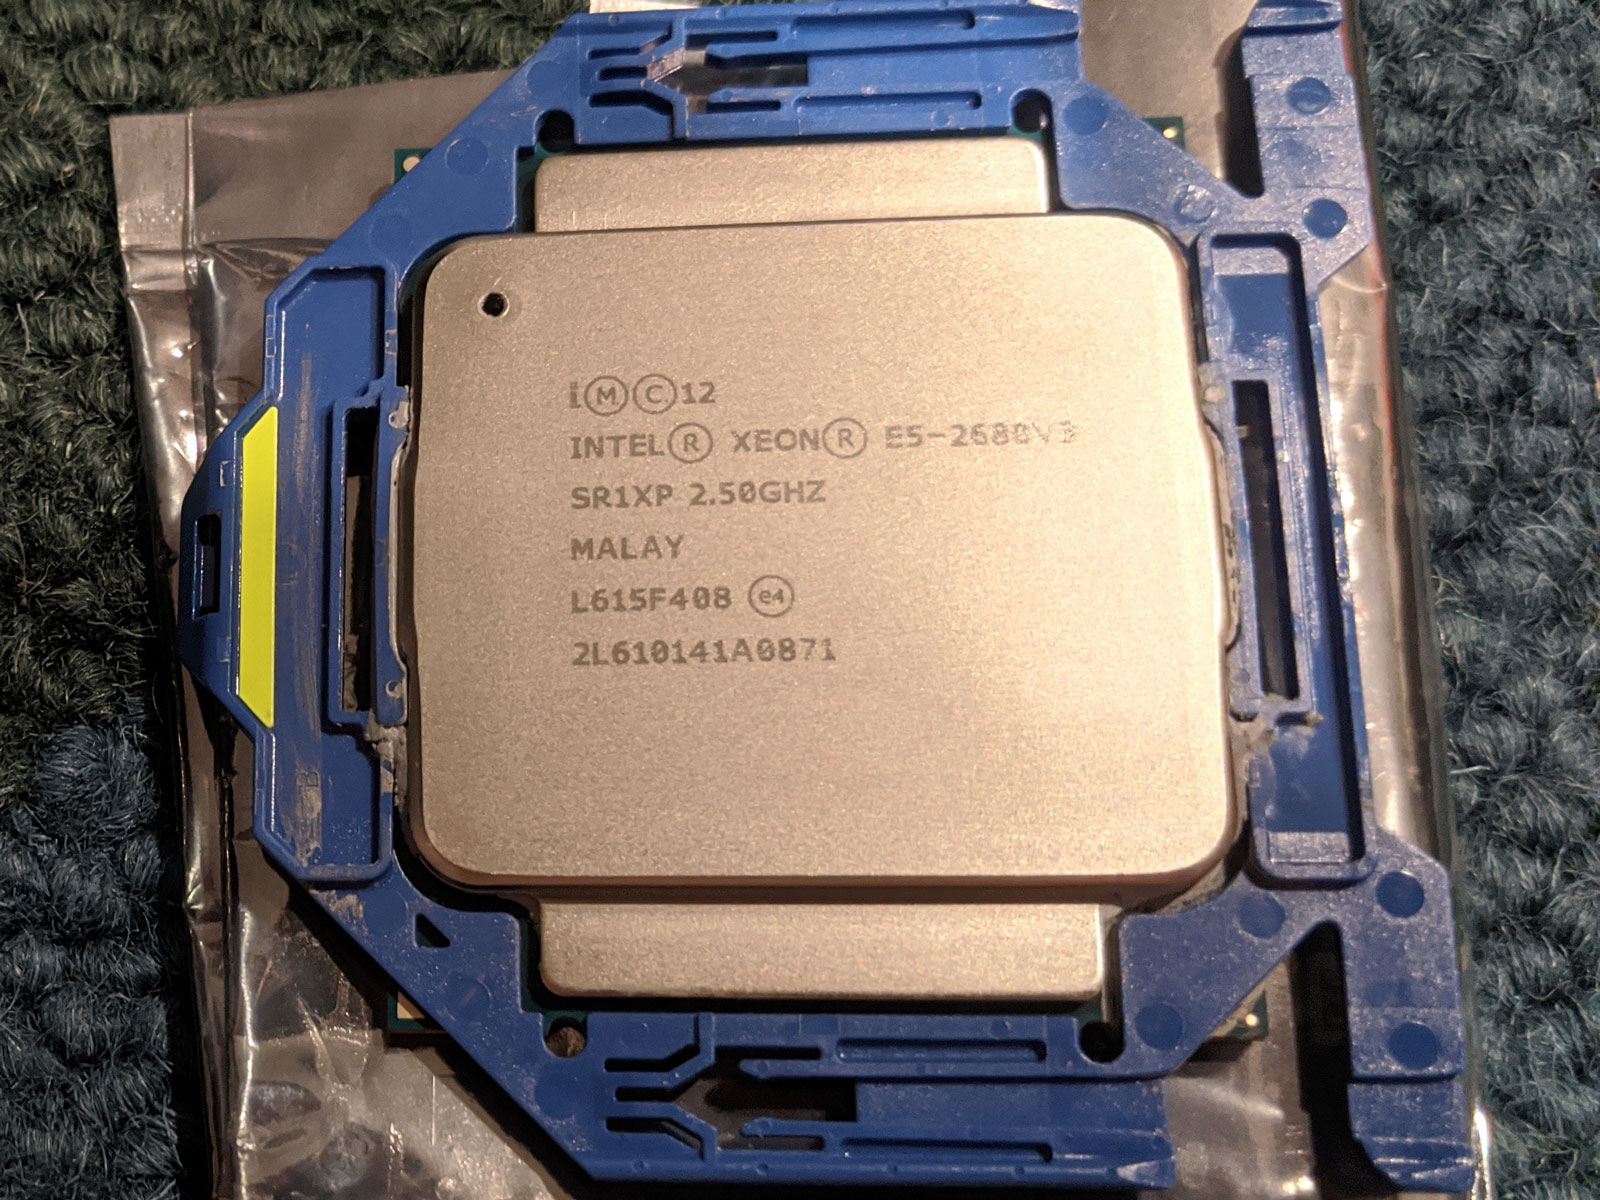 Photo of Intel Xeon E5-2680 v3 CPU